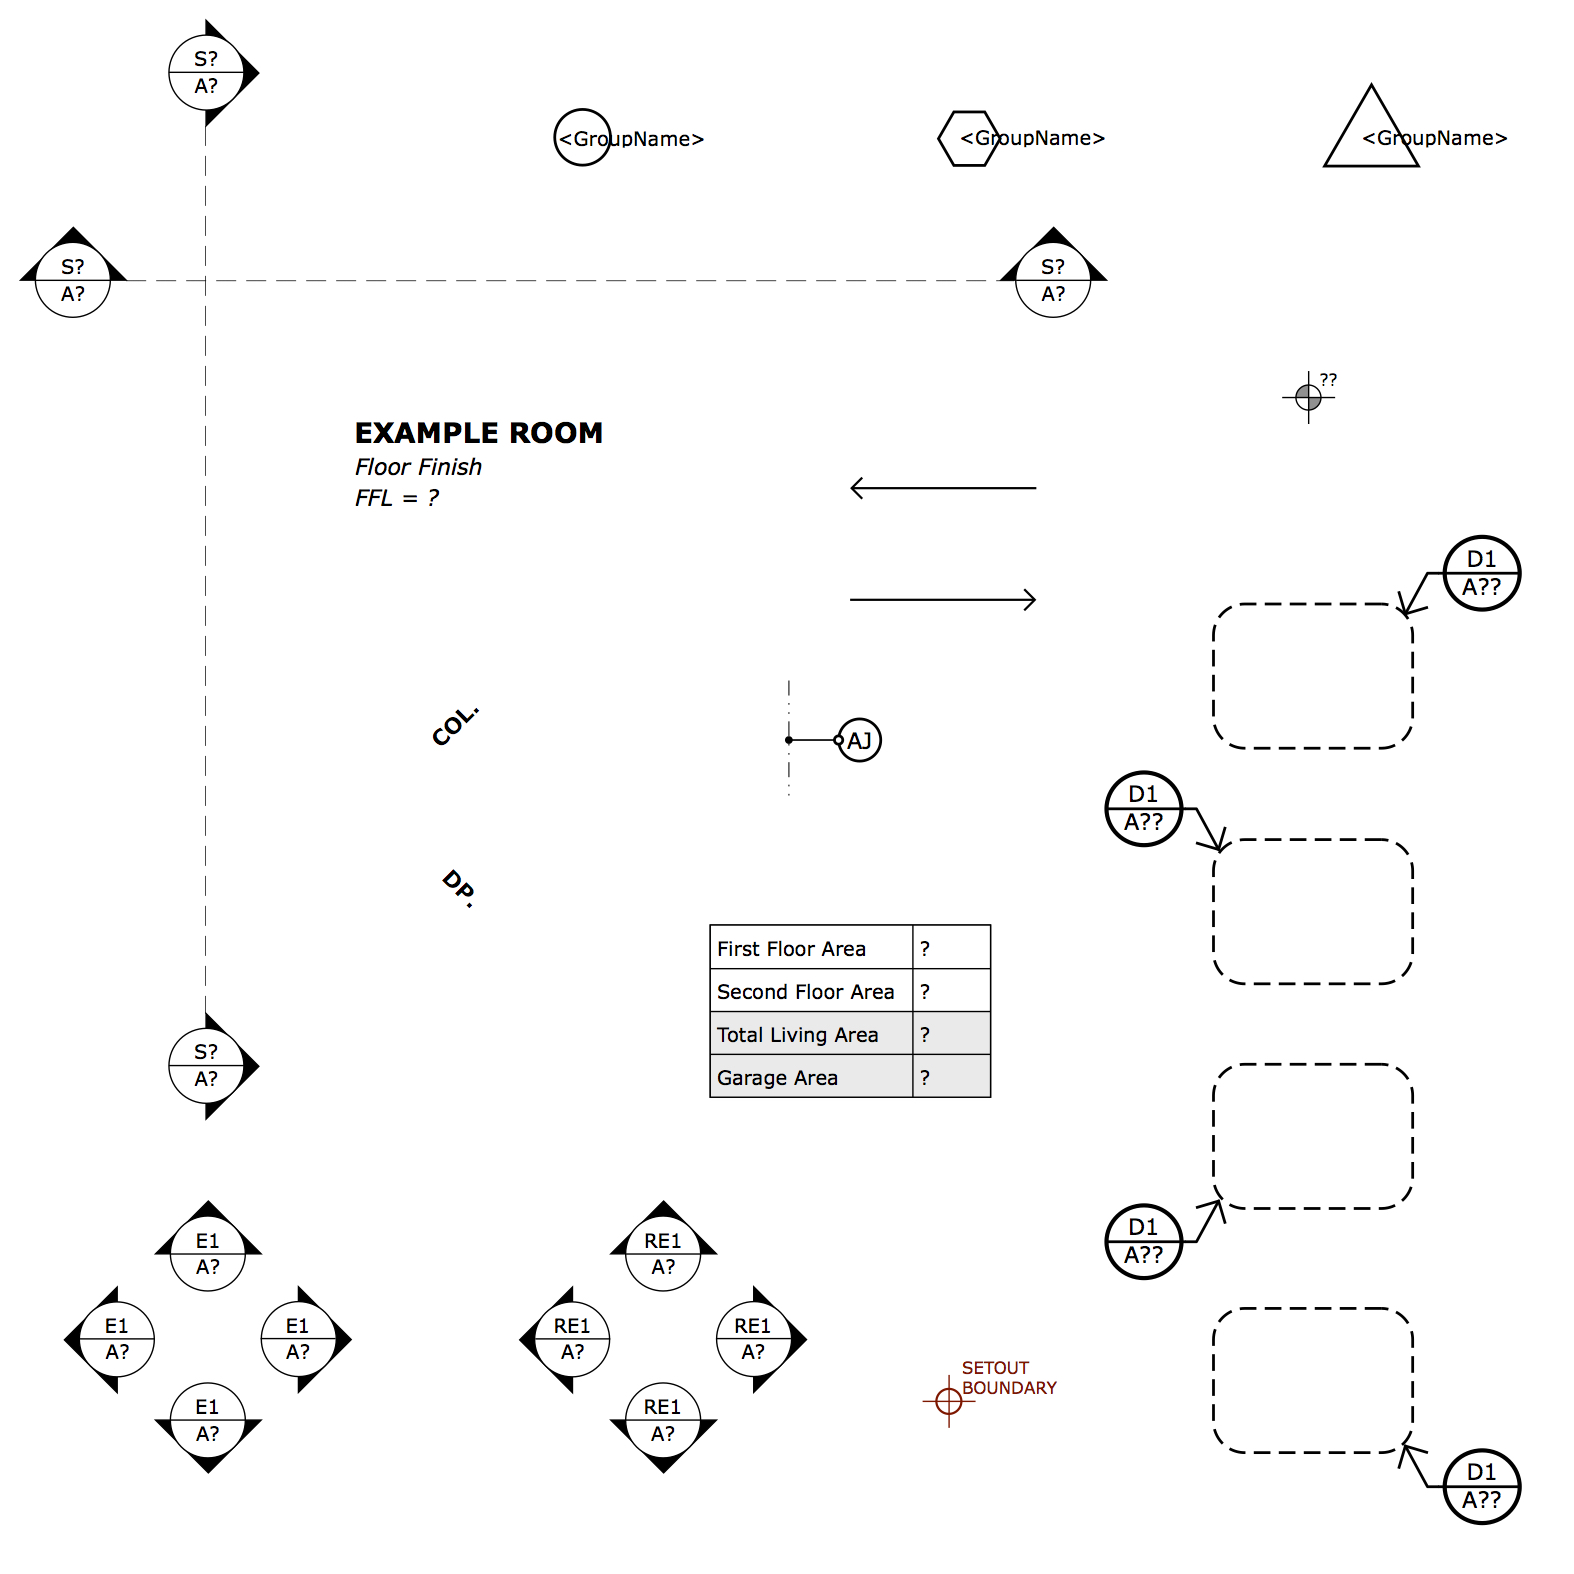 Layout Kick Starter Pack Plusspec Legend Of Electrical Plan Simply Customize The Symbols Or Sets To Suit Your Company And Style